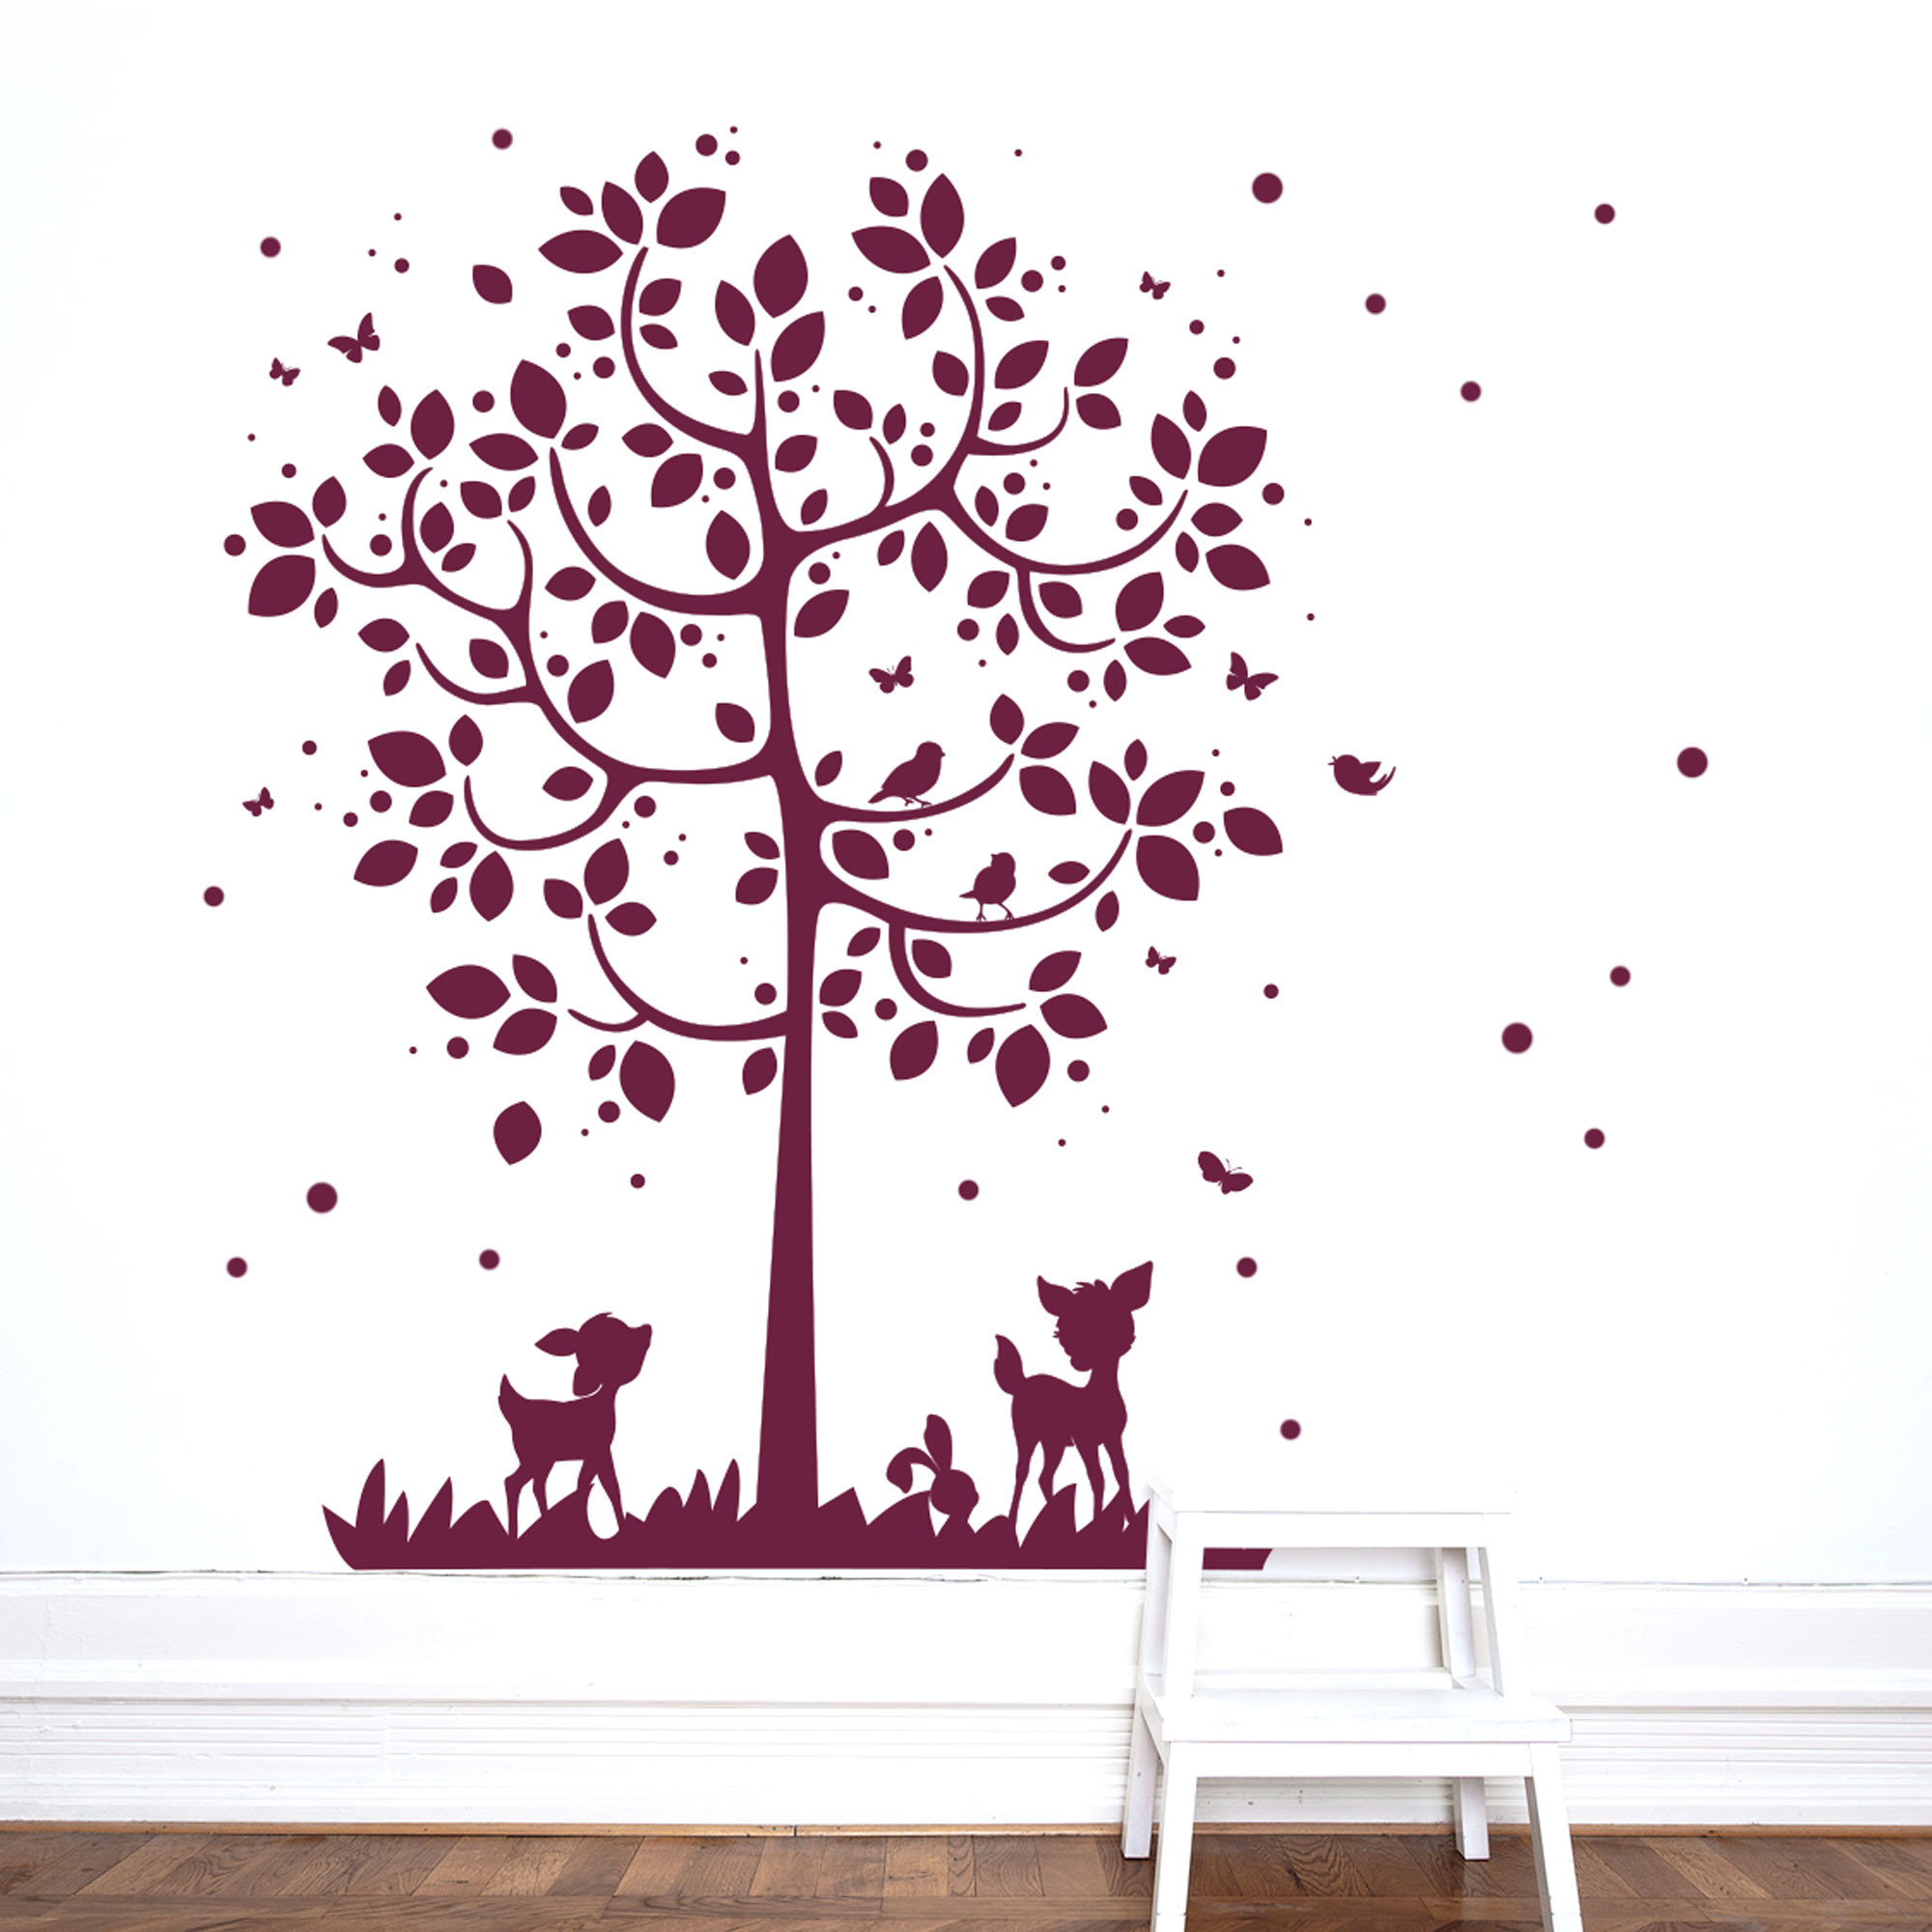 wandtattoo wandsticker baum mit reh hasen v gel. Black Bedroom Furniture Sets. Home Design Ideas